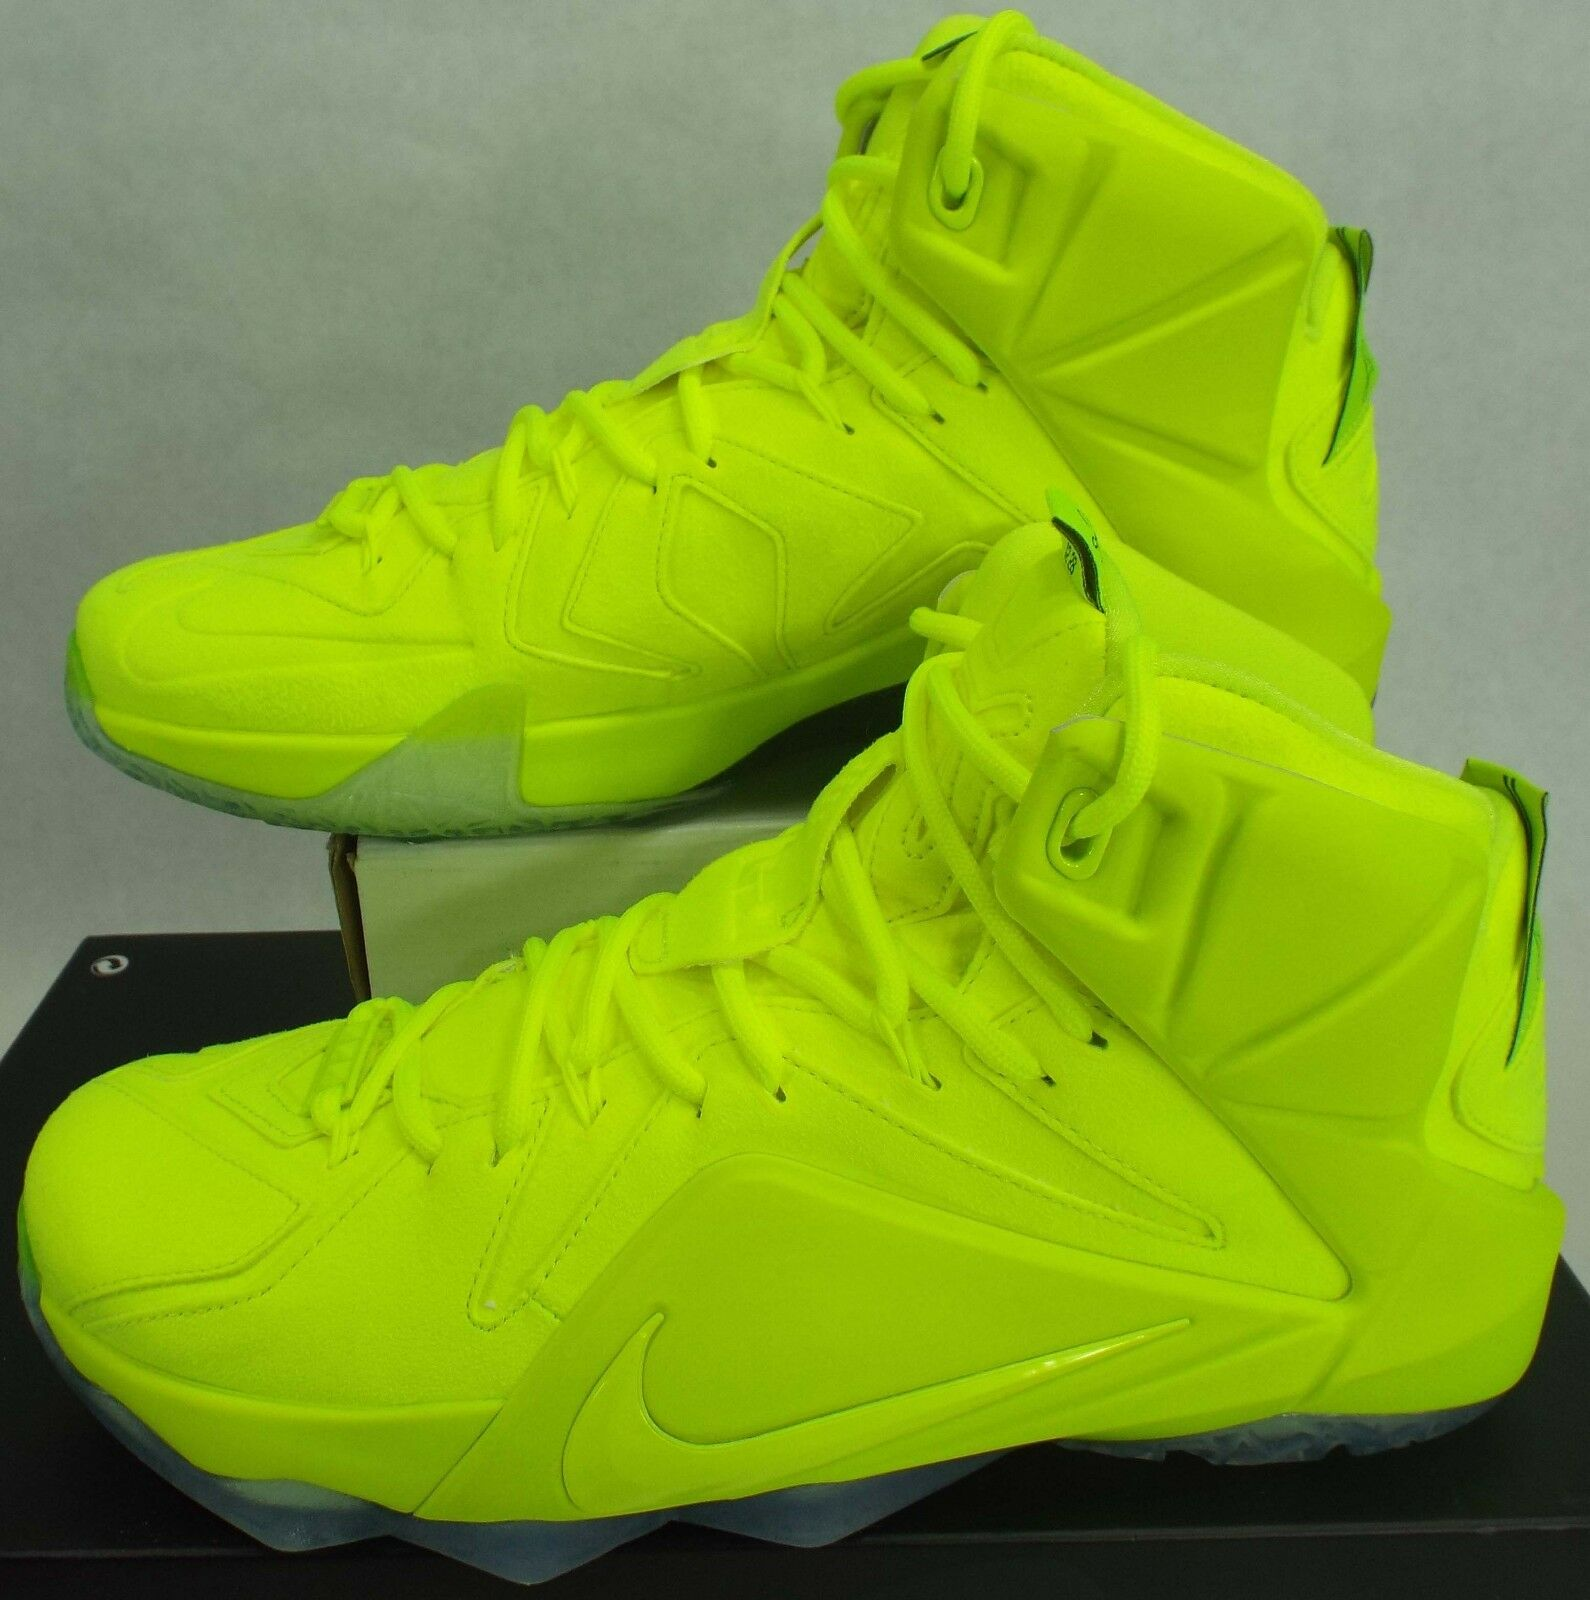 New Mens 9 NIKE Lebron XII EXT Volt Leather Basketball Shoes Price reduction